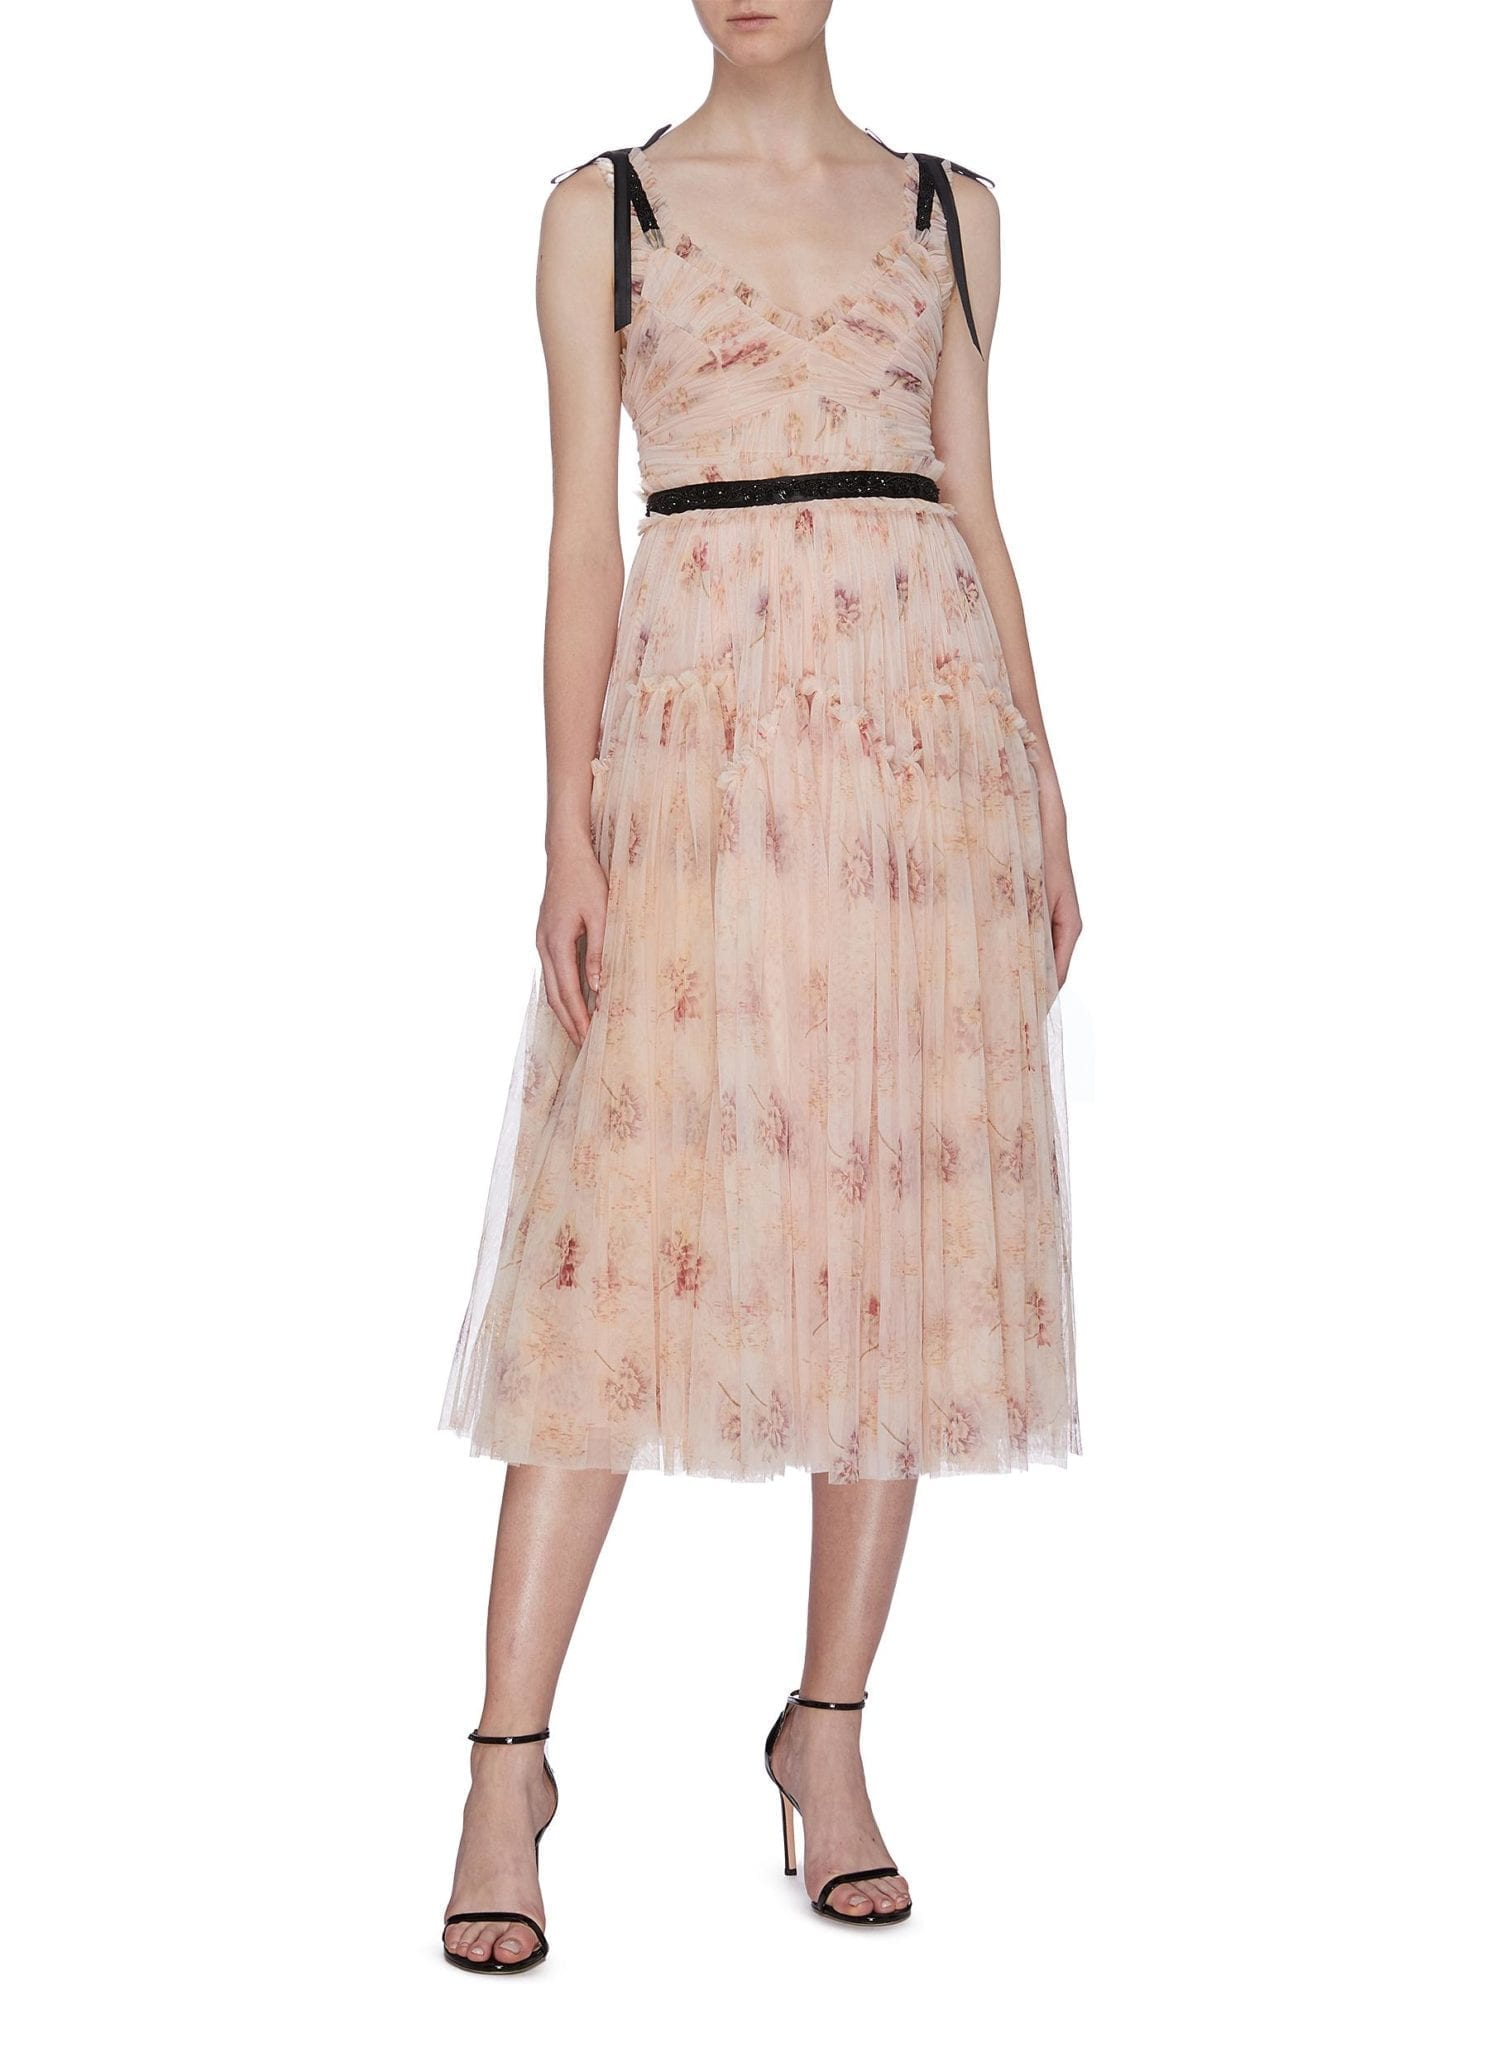 NEEDLE & THREAD 'Think Of Me Arabesque' Pleated Floral Print Tulle Dress